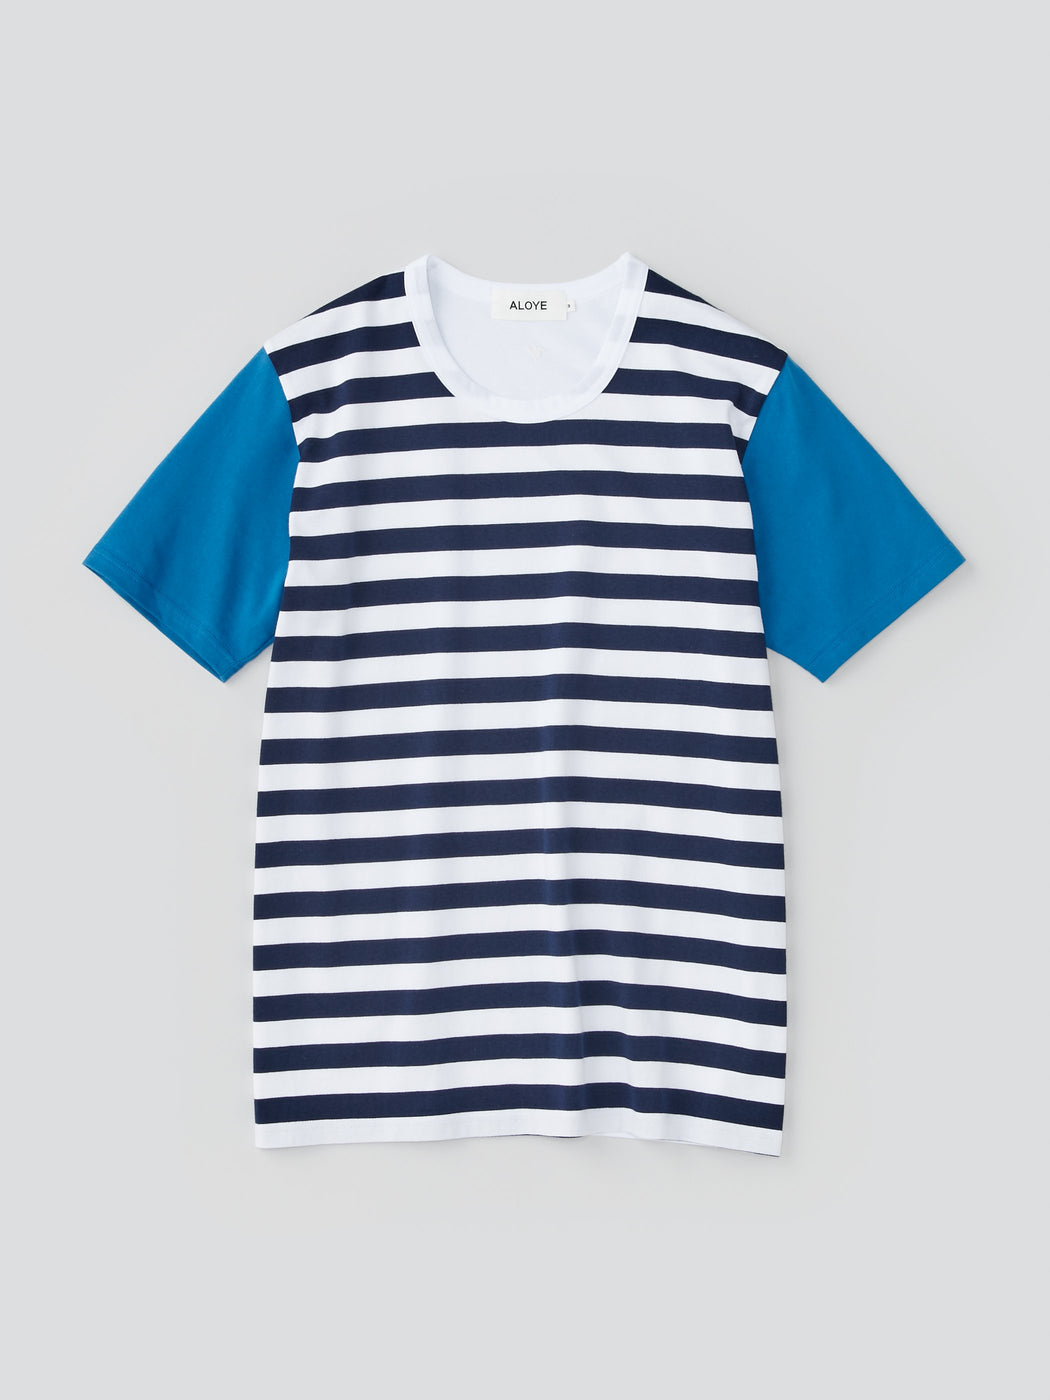 ALOYE Dots & Stripes Men's Short Sleeve T-shirt Navy Stripe-Blue Sleeve